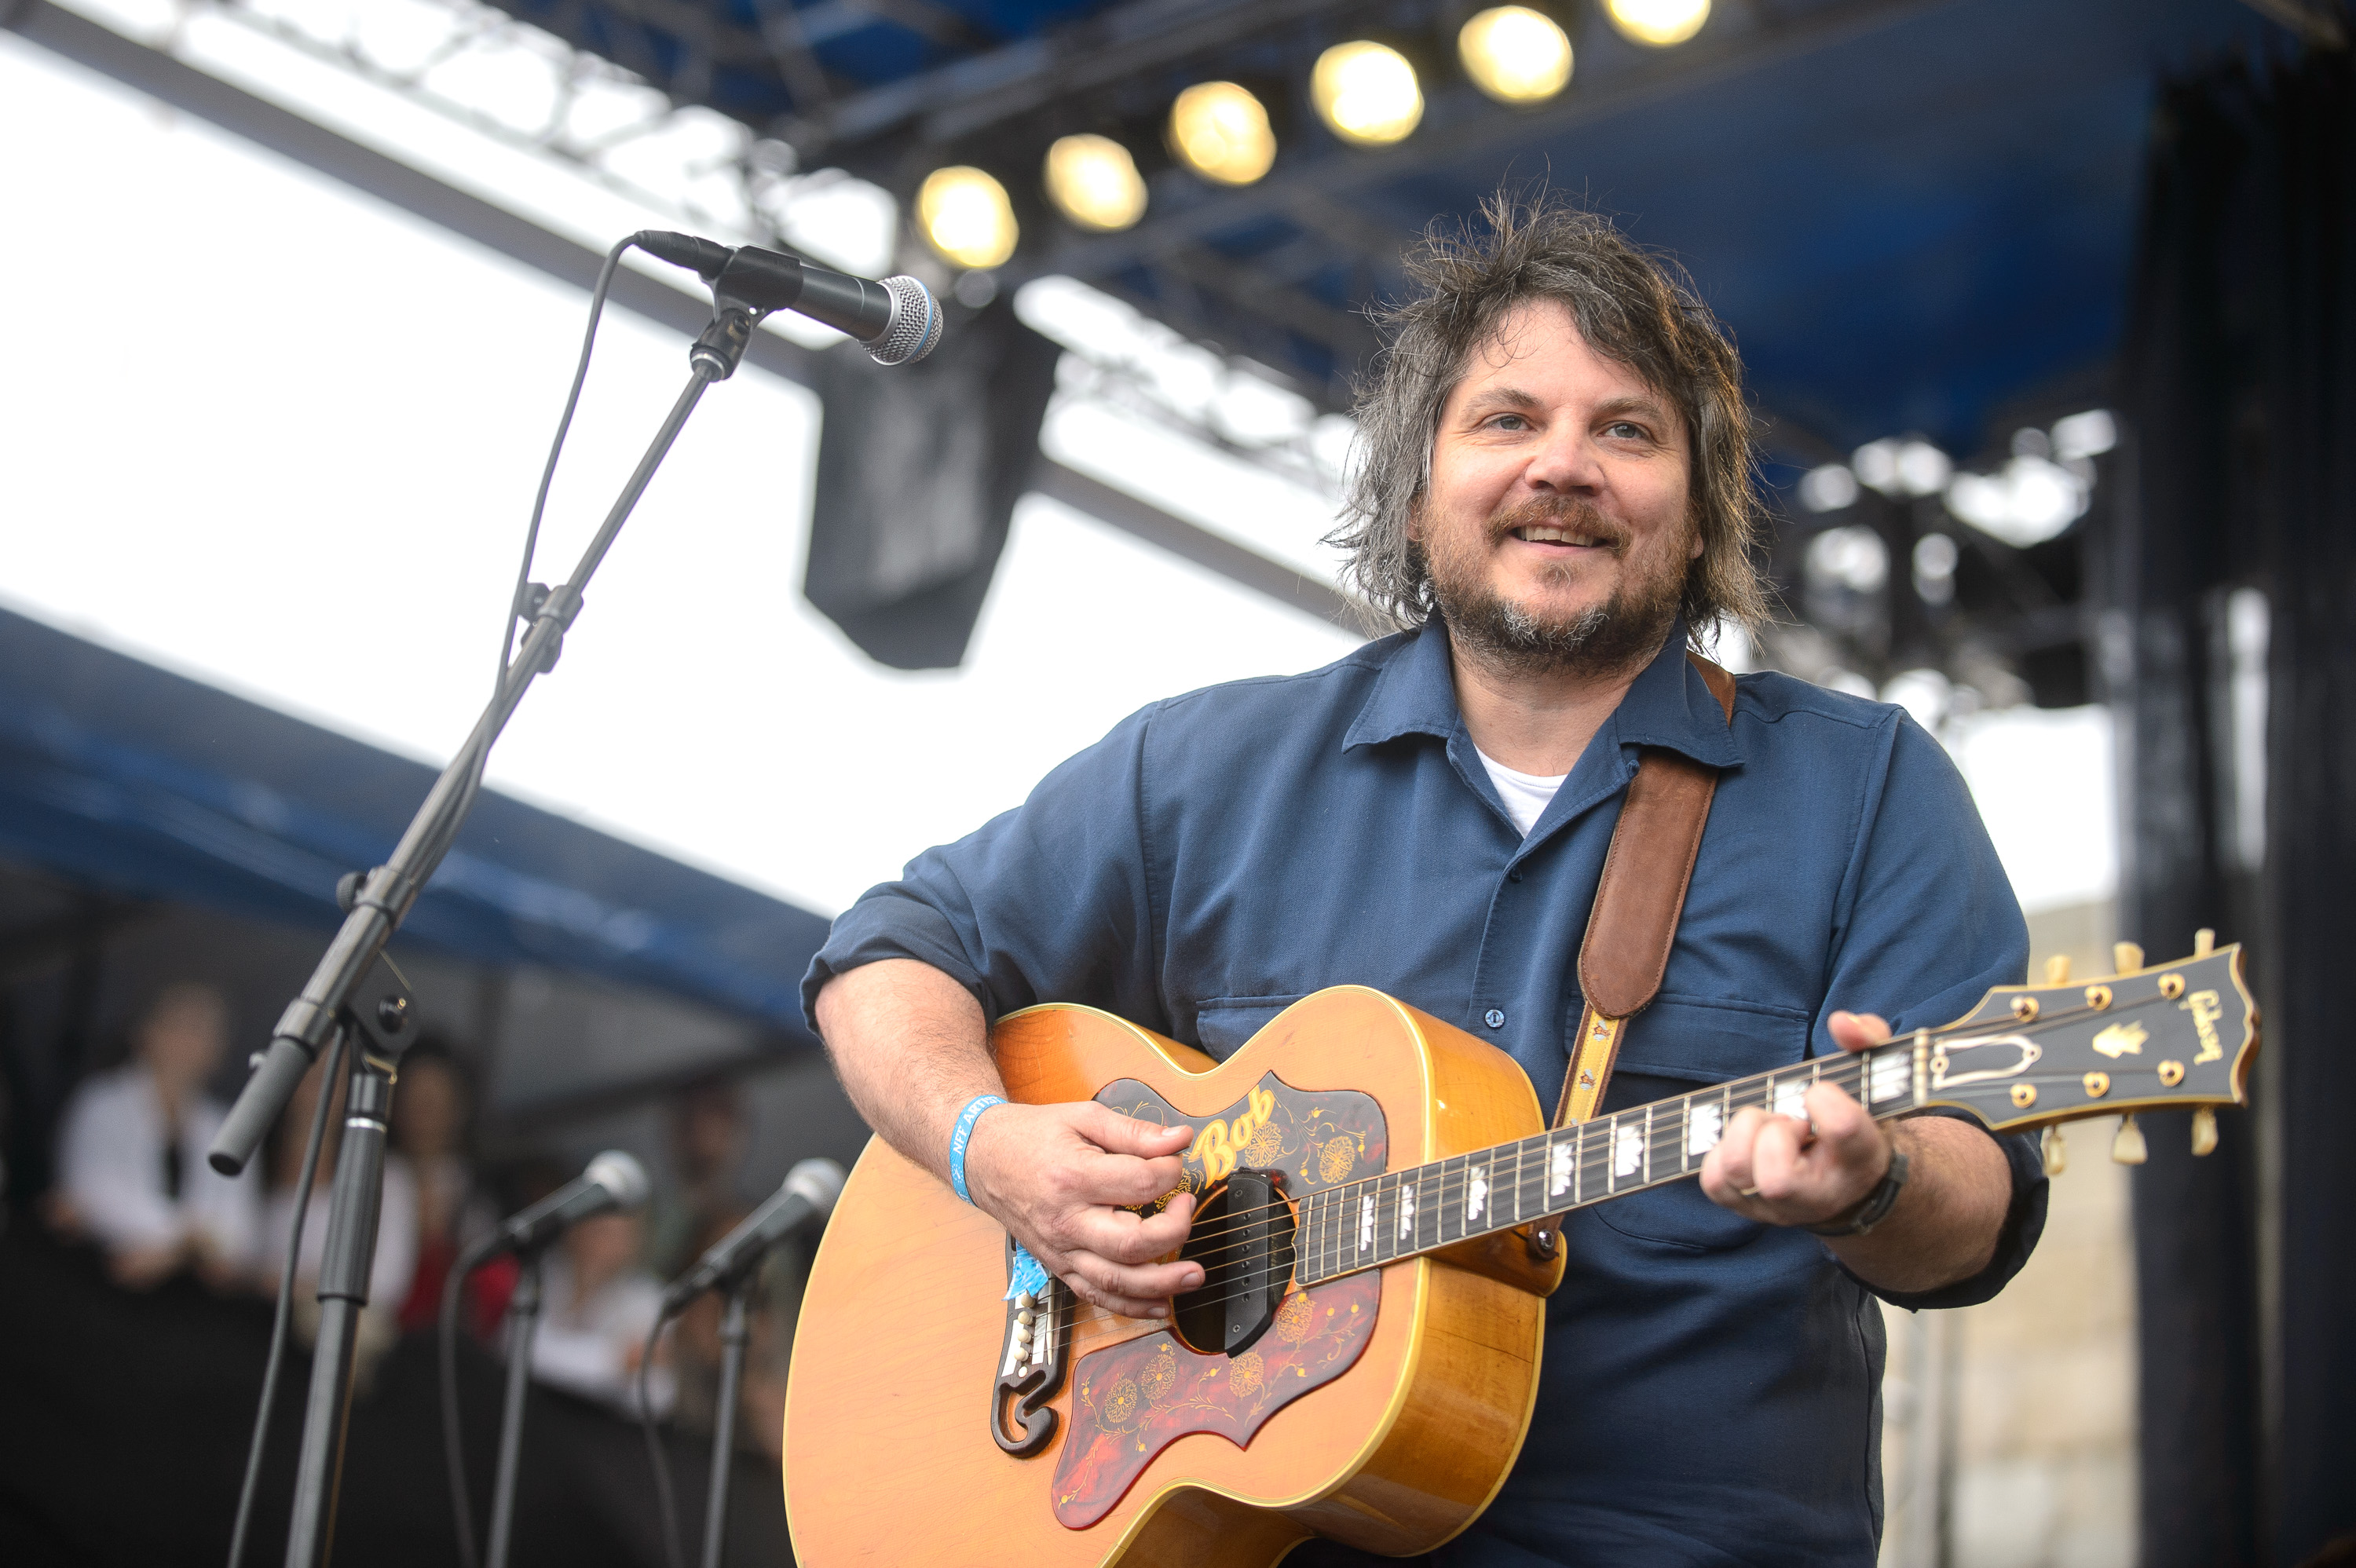 Jeff Tweedy performs at the 2014 Newport Folk Festival